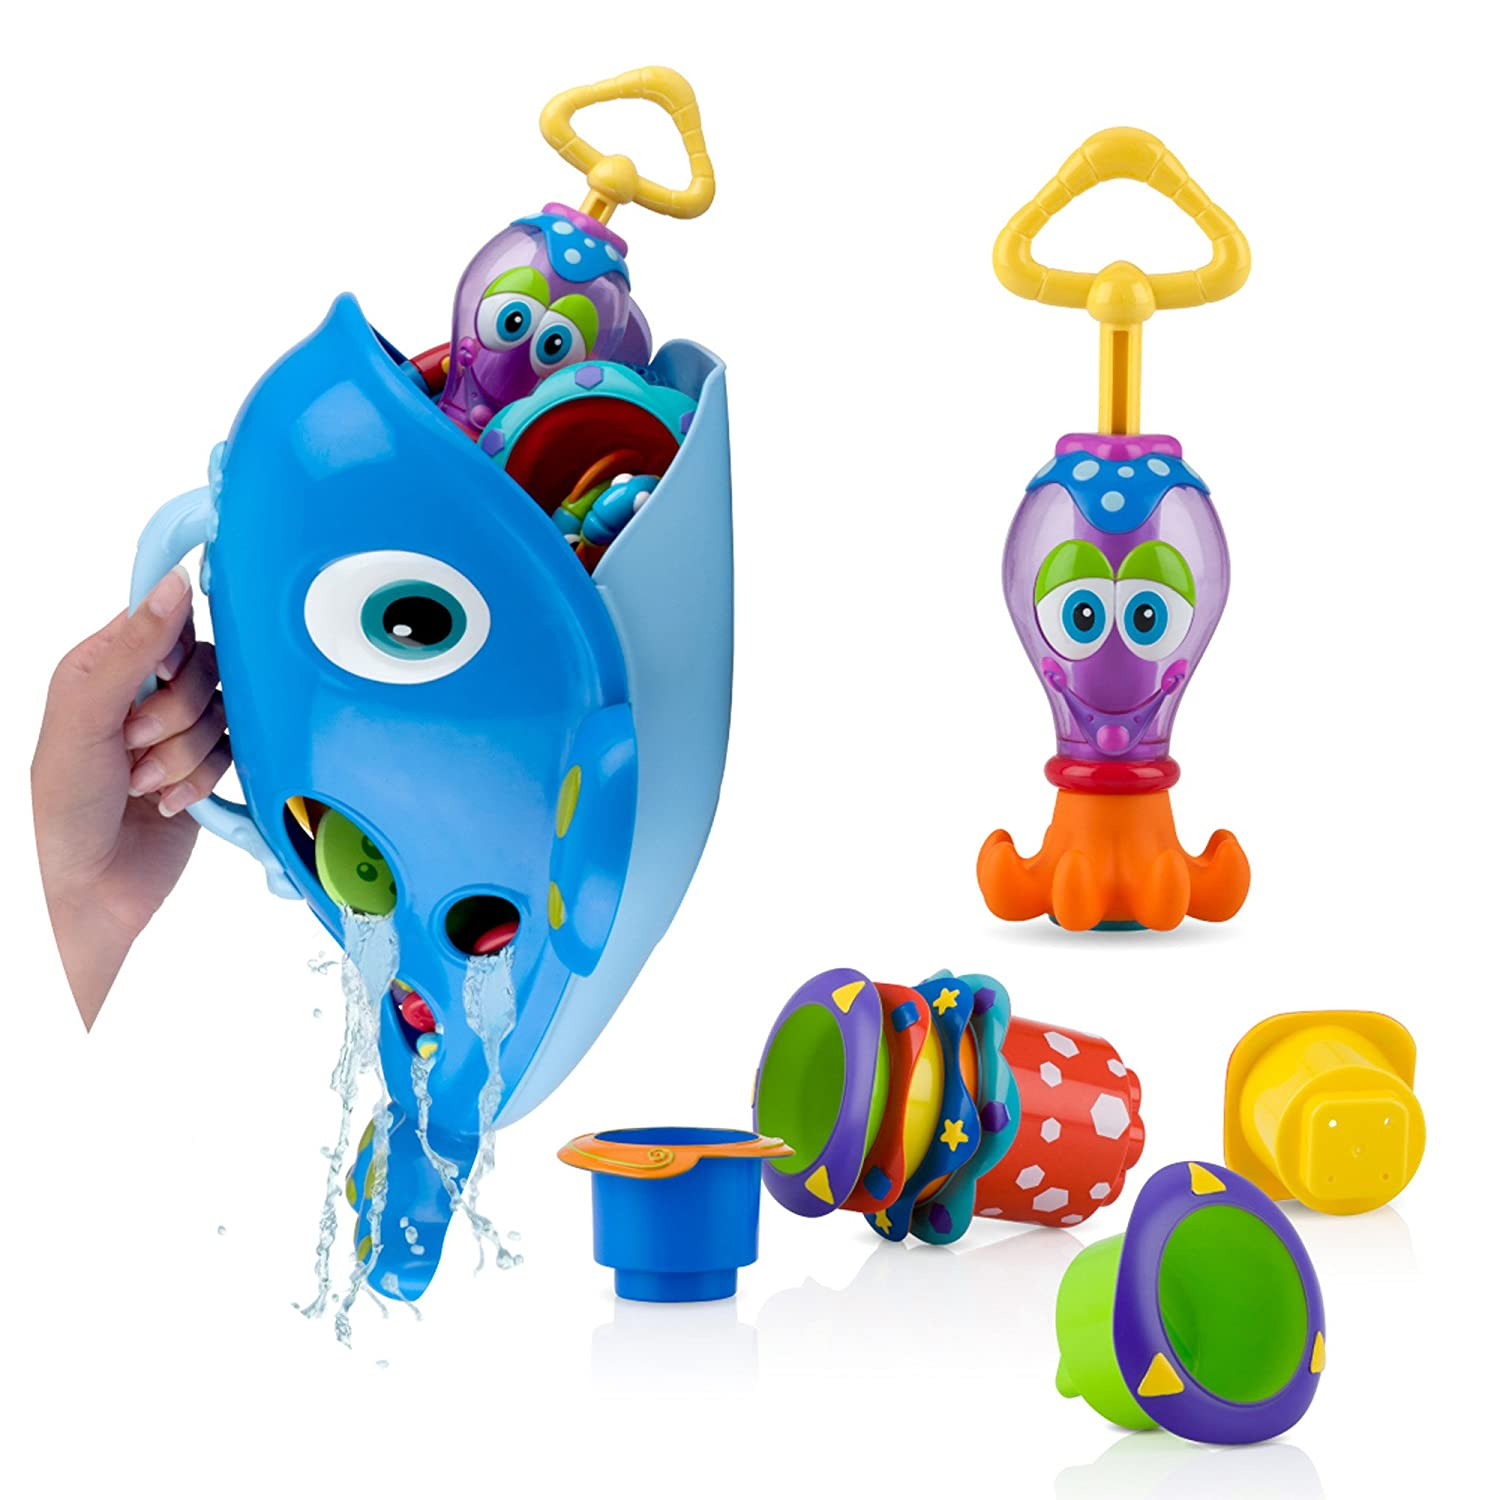 Amazon.com : Nuby Bath Toy Gift Set : Baby